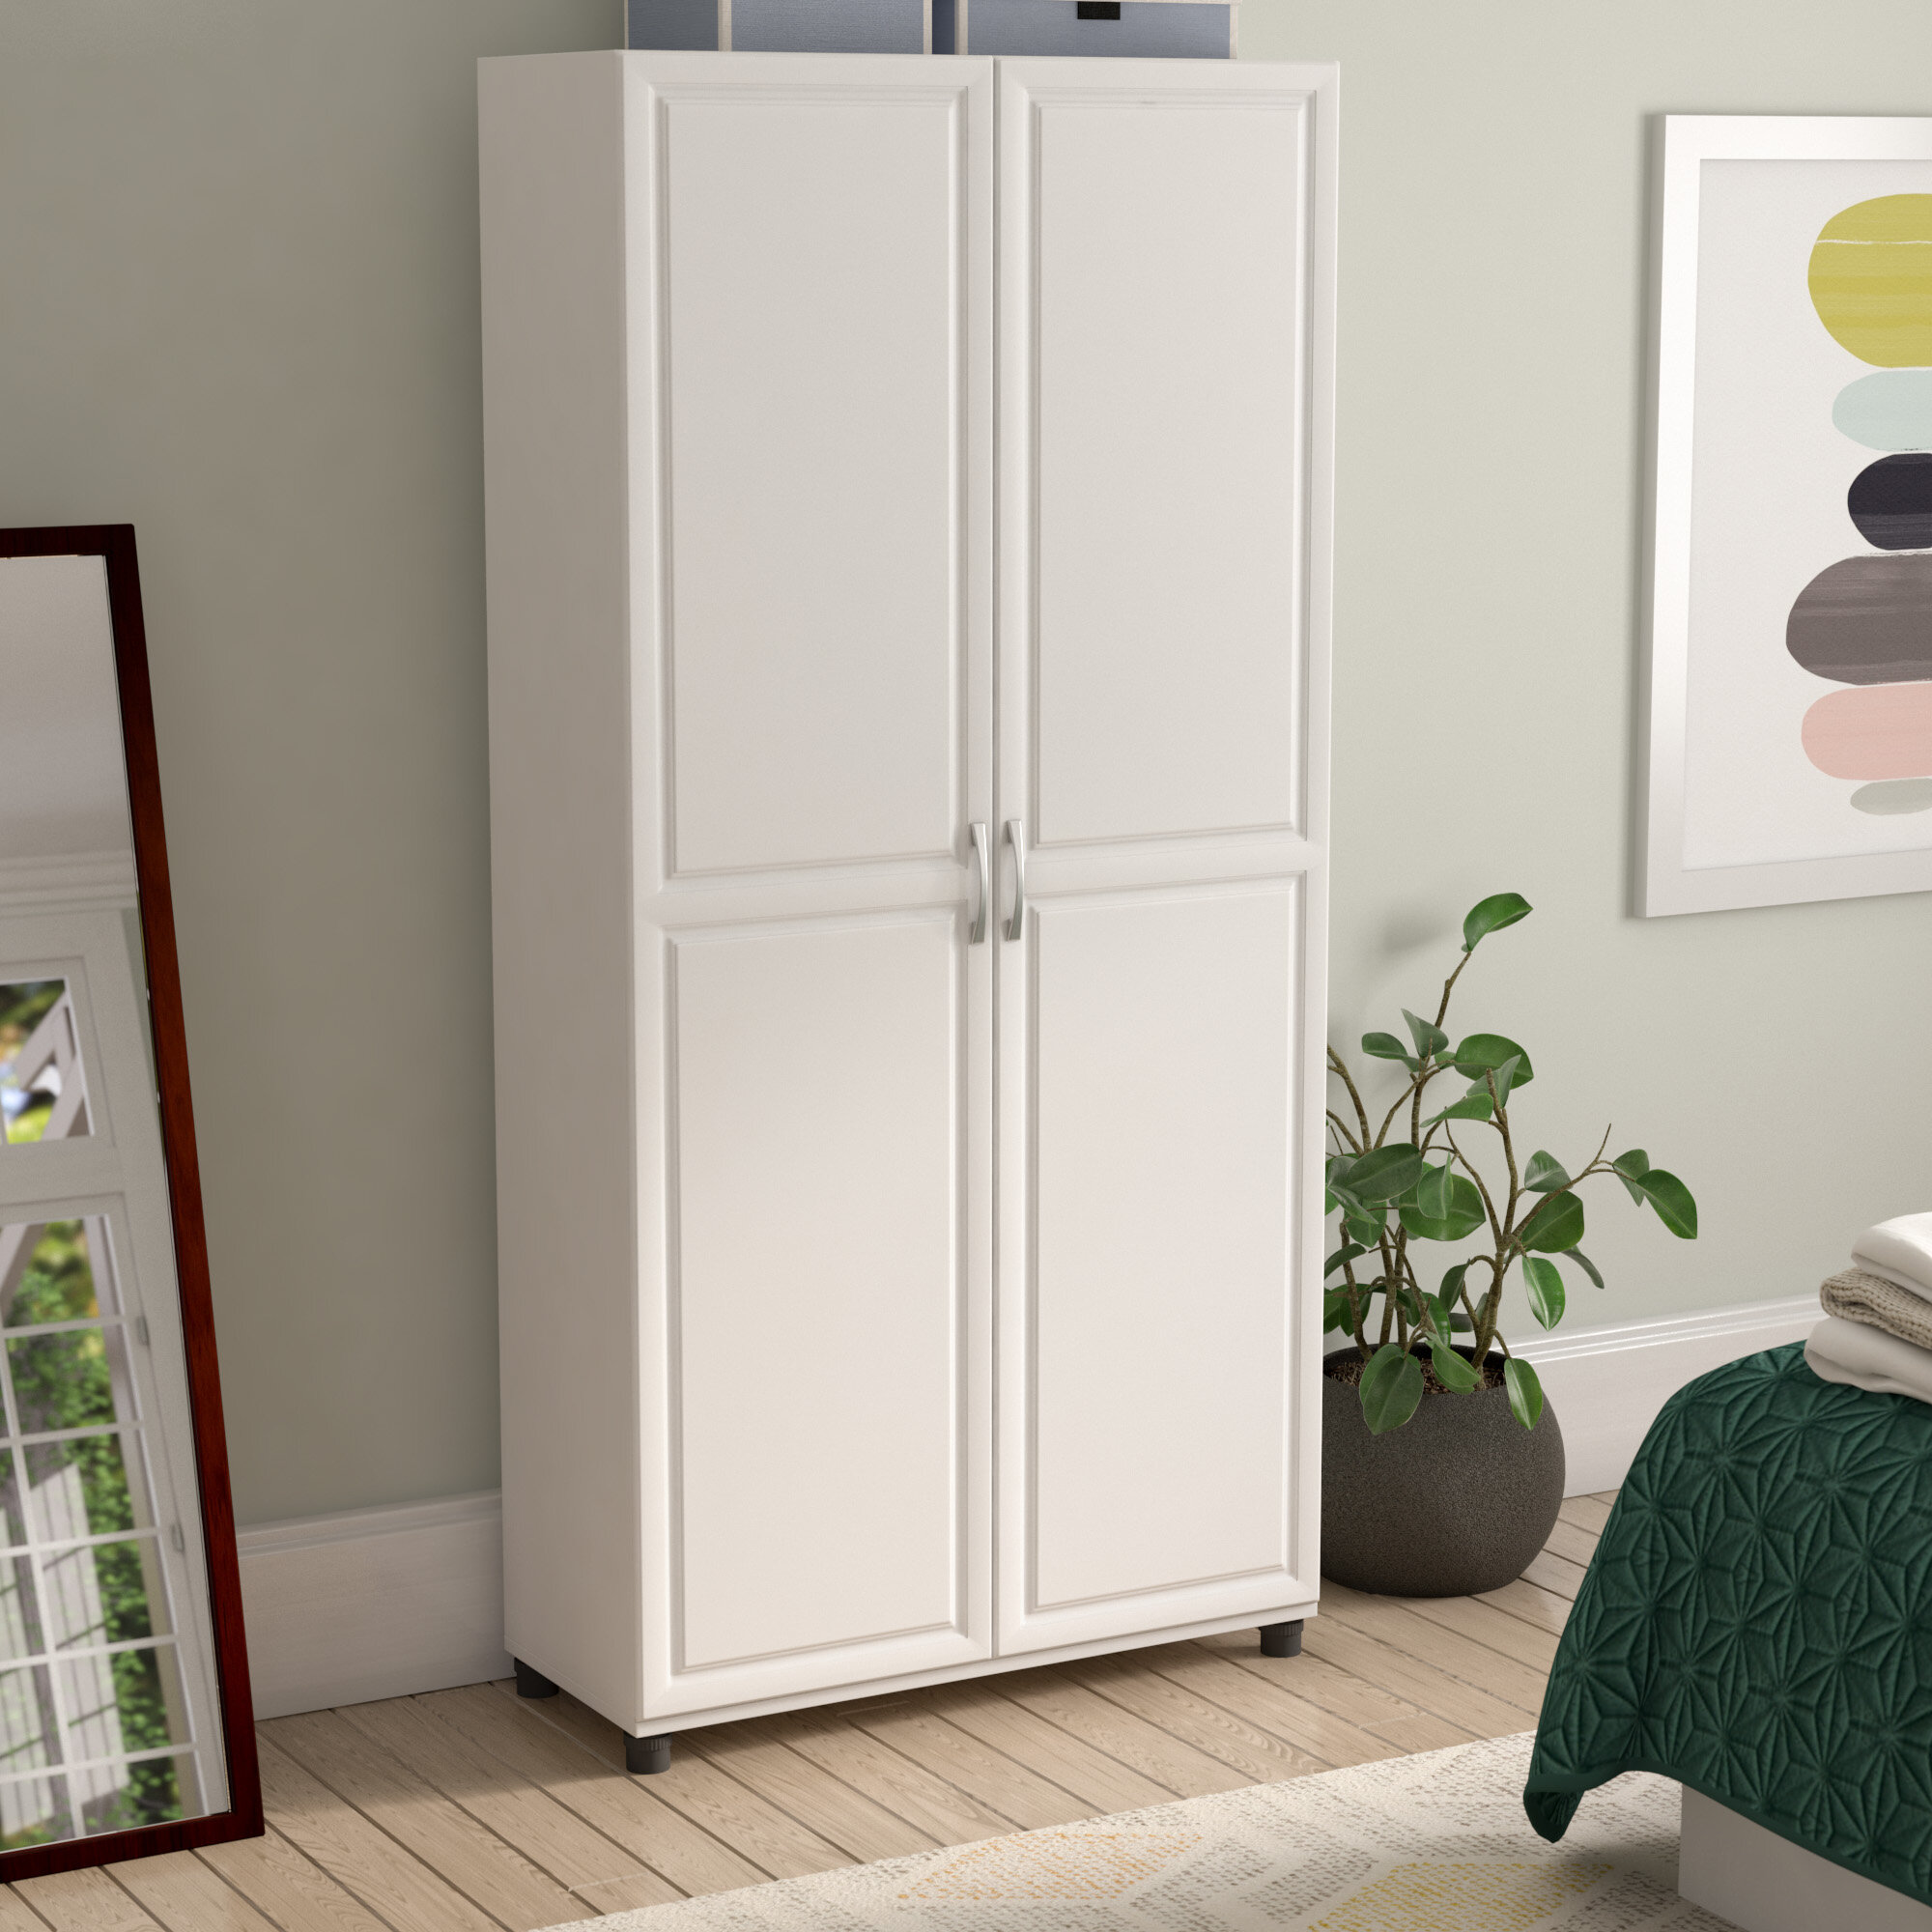 32 Freestanding Kitchen Cabinets For Sale